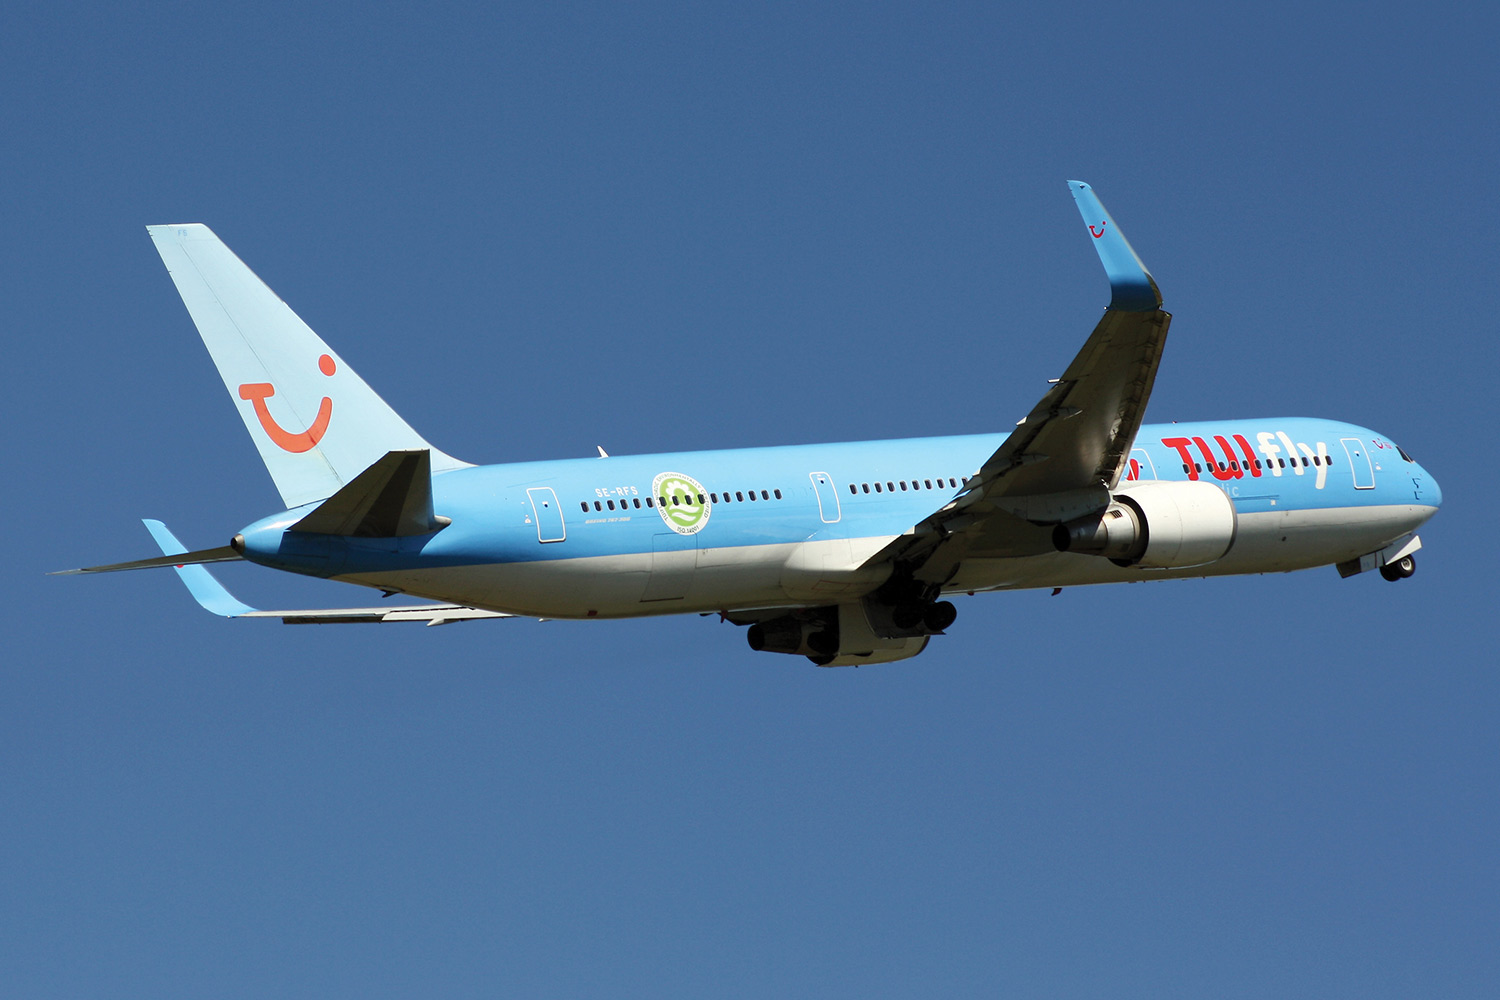 Tui flight was diverted after ovens contaminated with wrong cleaning fluid